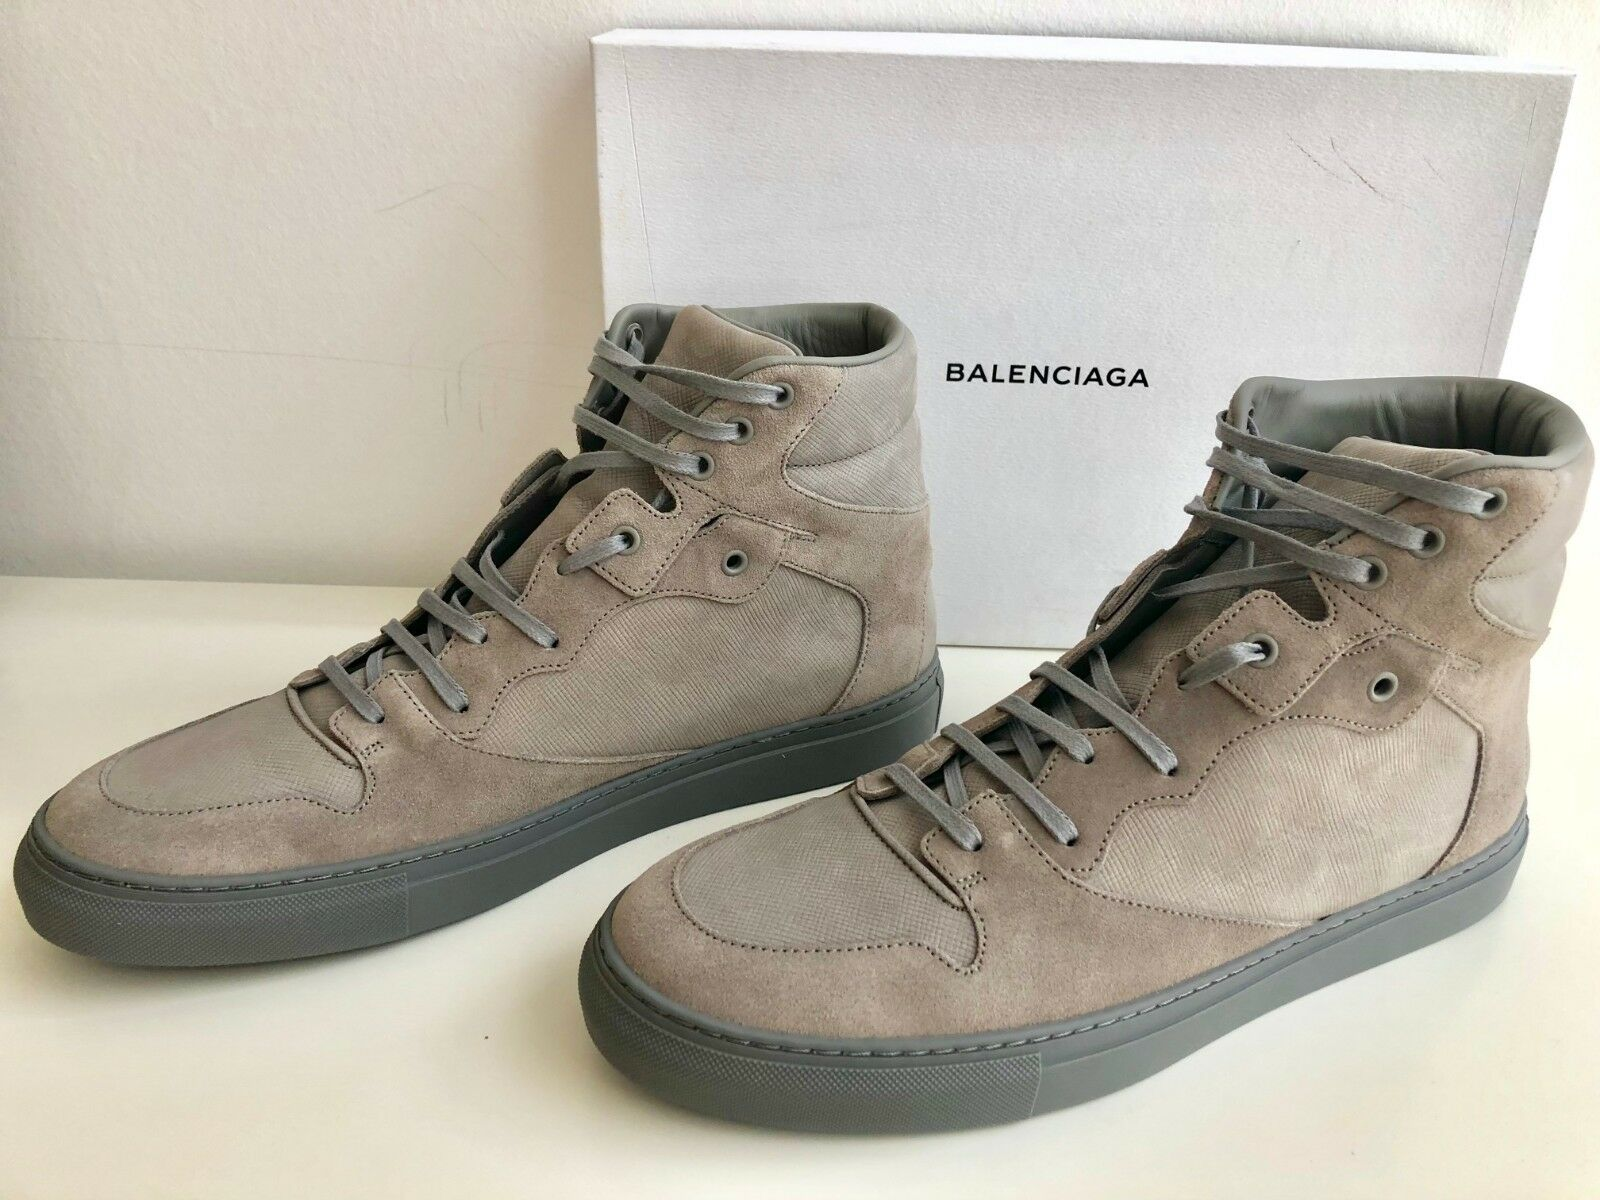 SALE !!! Balenciaga High Top SNEAKERS Suede Leather Size 45 US 12